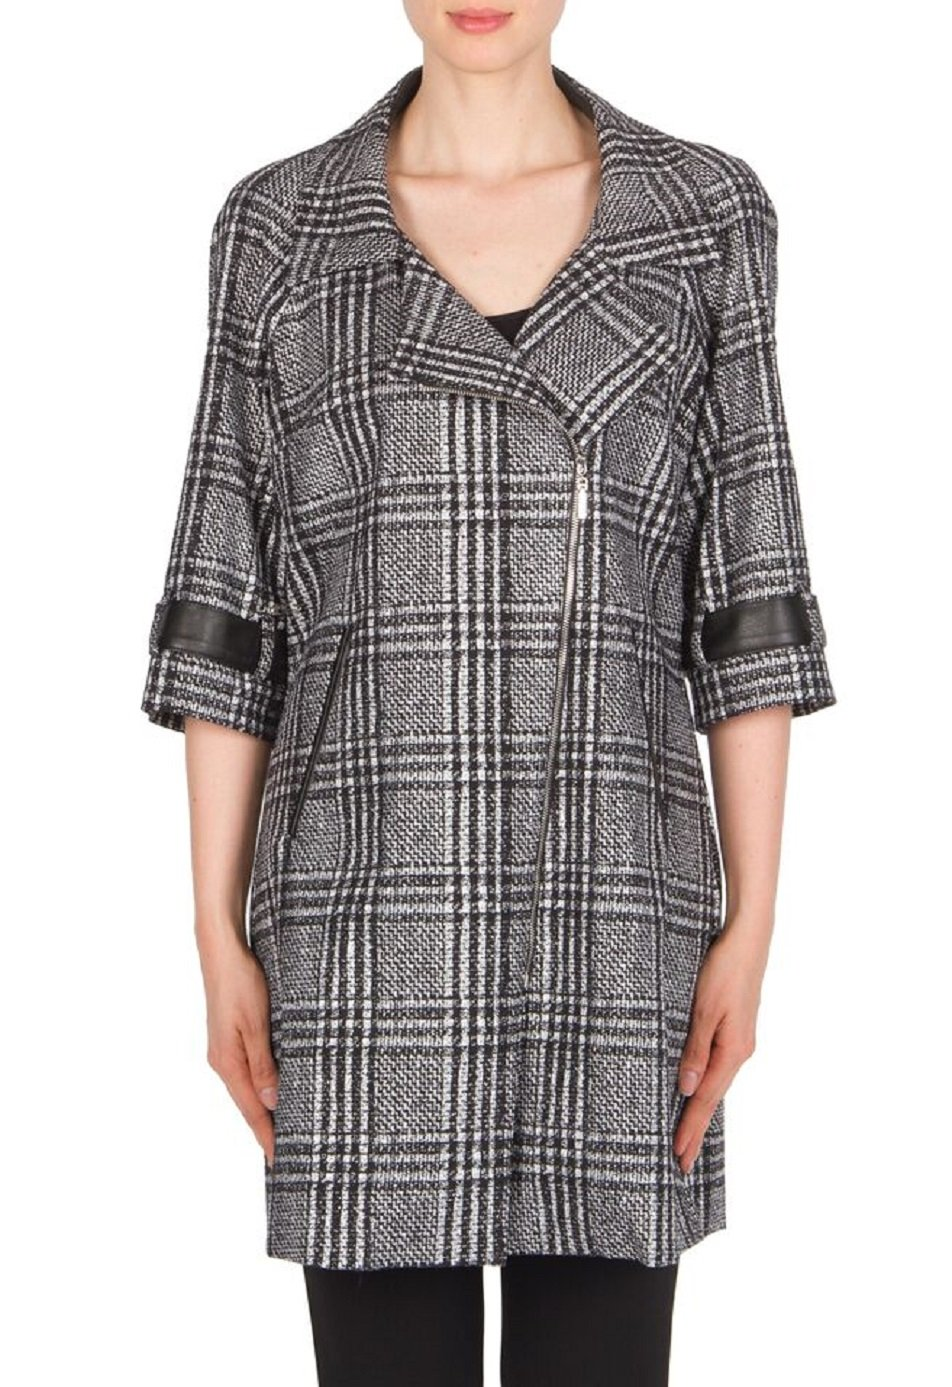 Joseph Ribkoff Full Length Coat with Oversized Glen Plaid Print Style 174793 Size 12 by Joseph Ribkoff